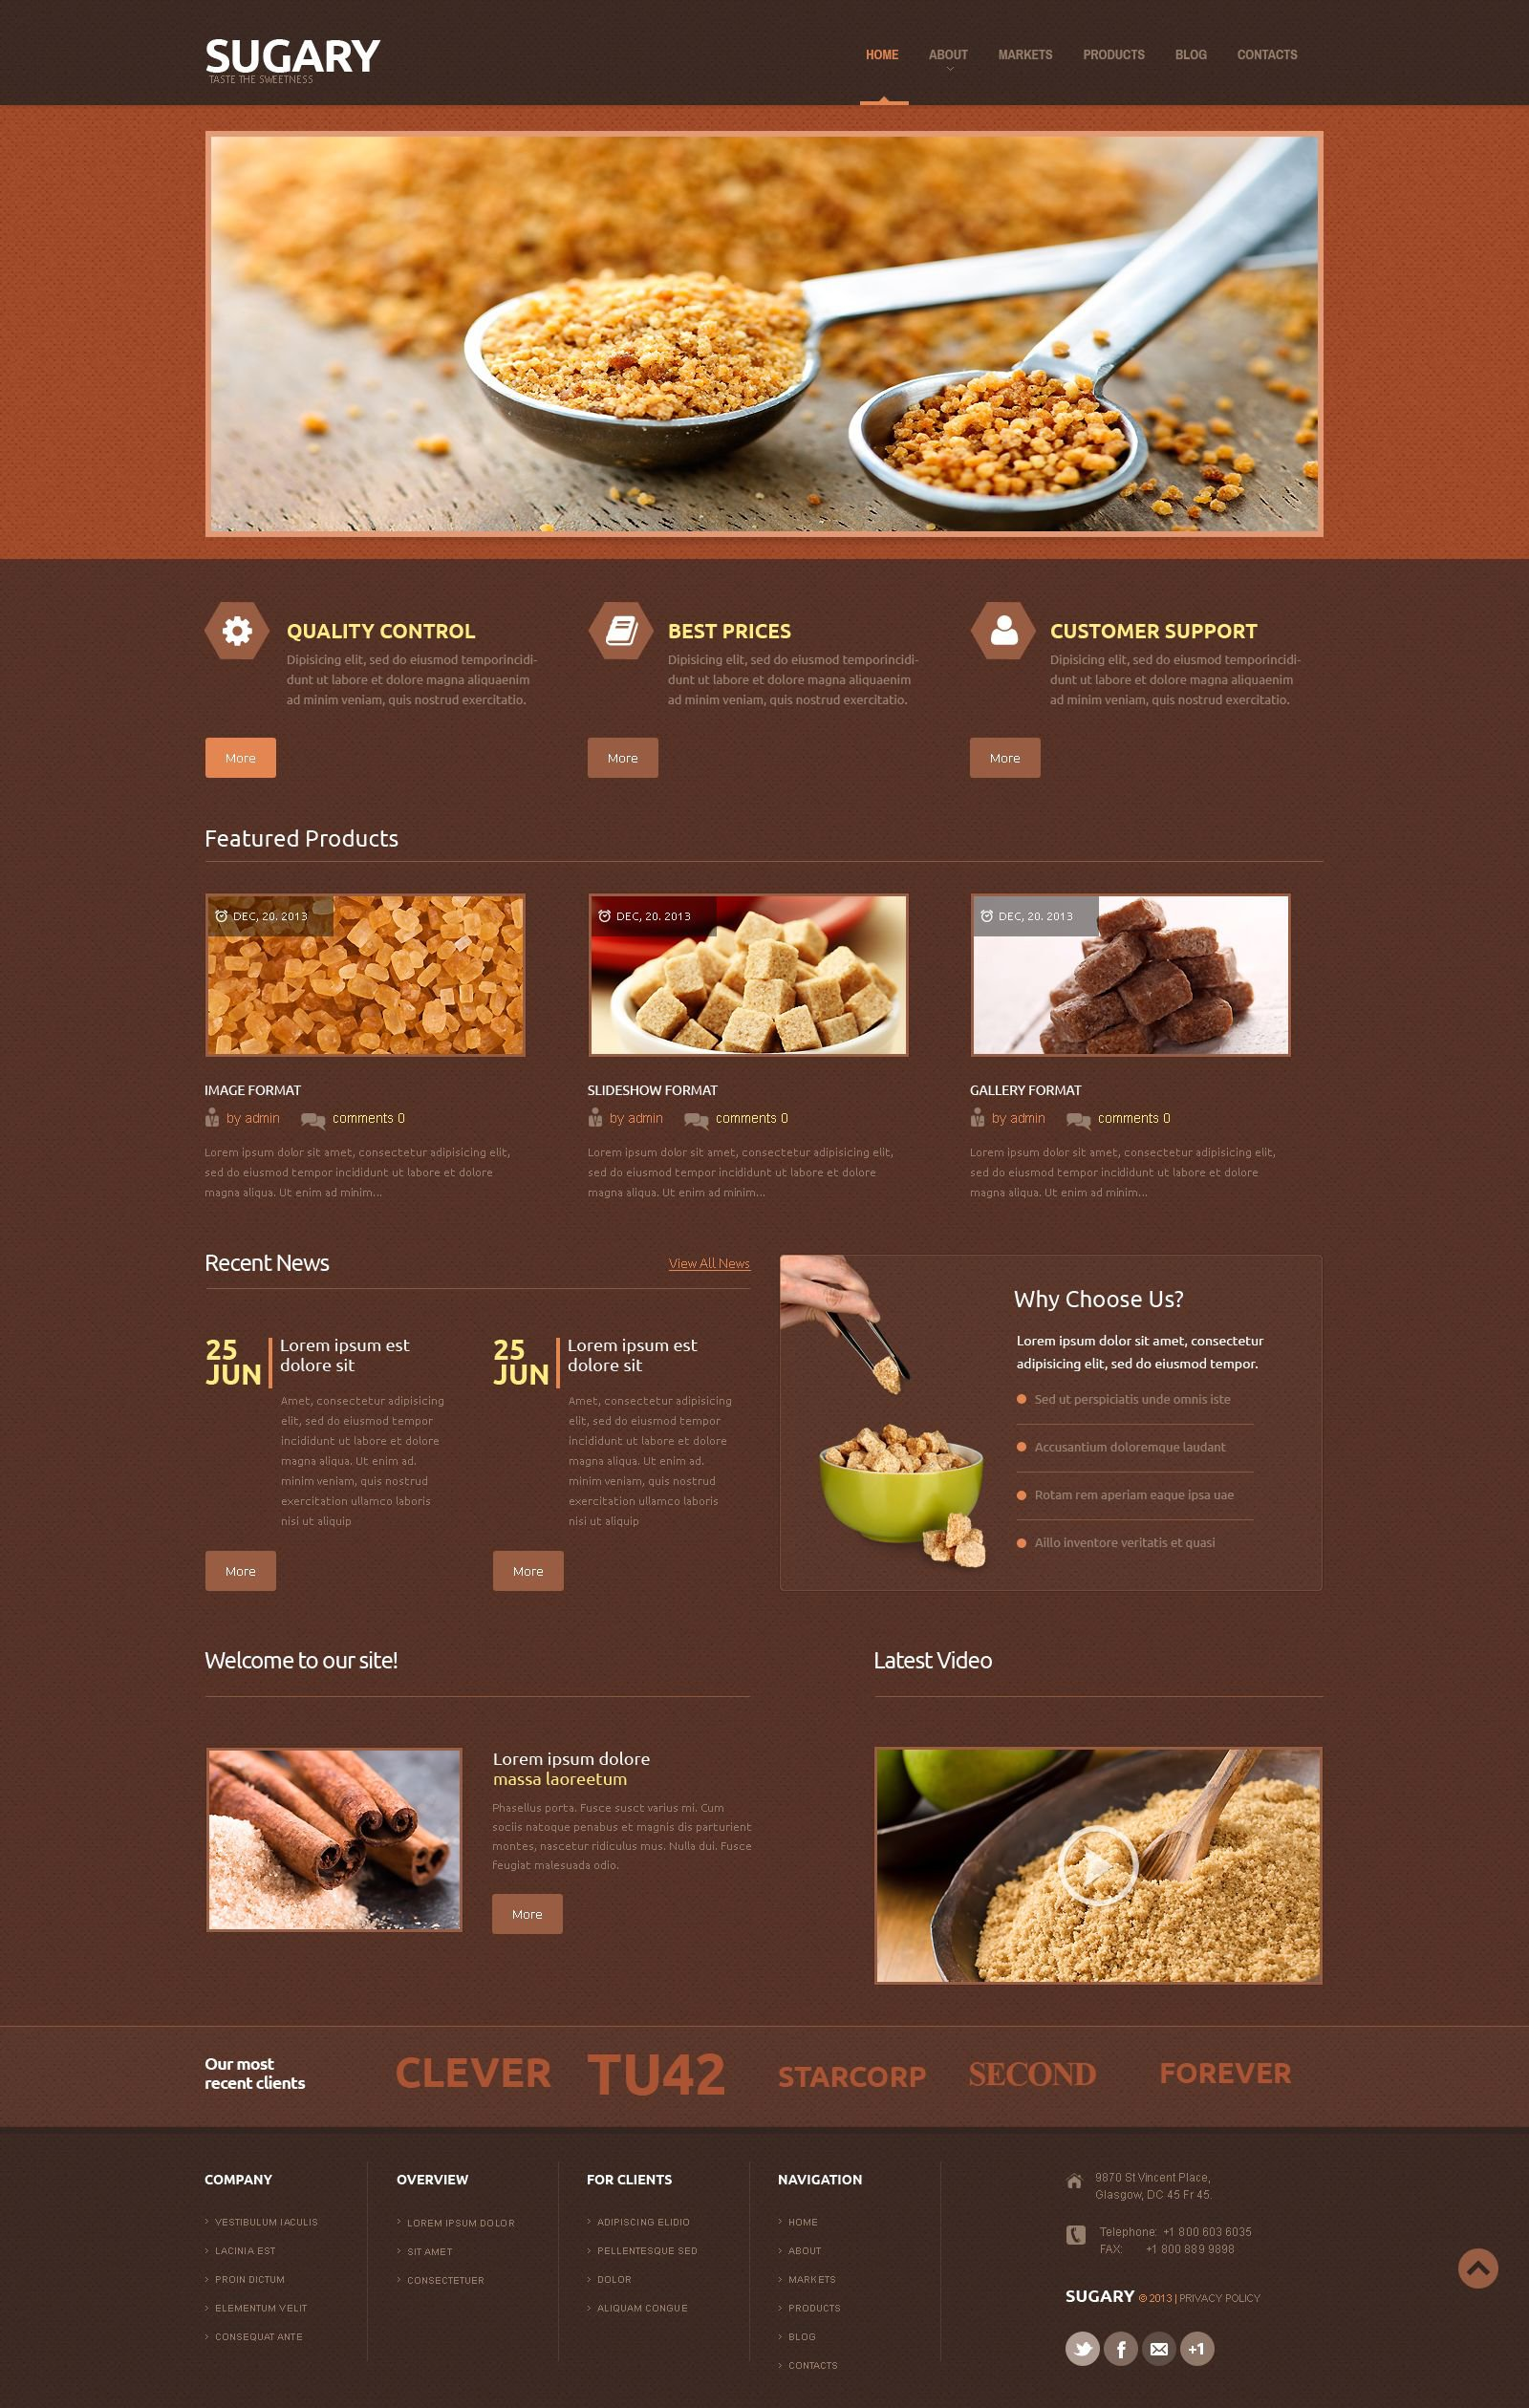 The Sugary Sugar WordPress Design 53434, one of the best WordPress themes of its kind (food & drink, most popular), also known as sugary sugar WordPress template, industry WordPress template, sweet manufacturer WordPress template, production WordPress template, beet WordPress template, sugarcane WordPress template, lump and related with sugary sugar, industry, sweet manufacturer, production, beet, sugarcane, lump, etc.